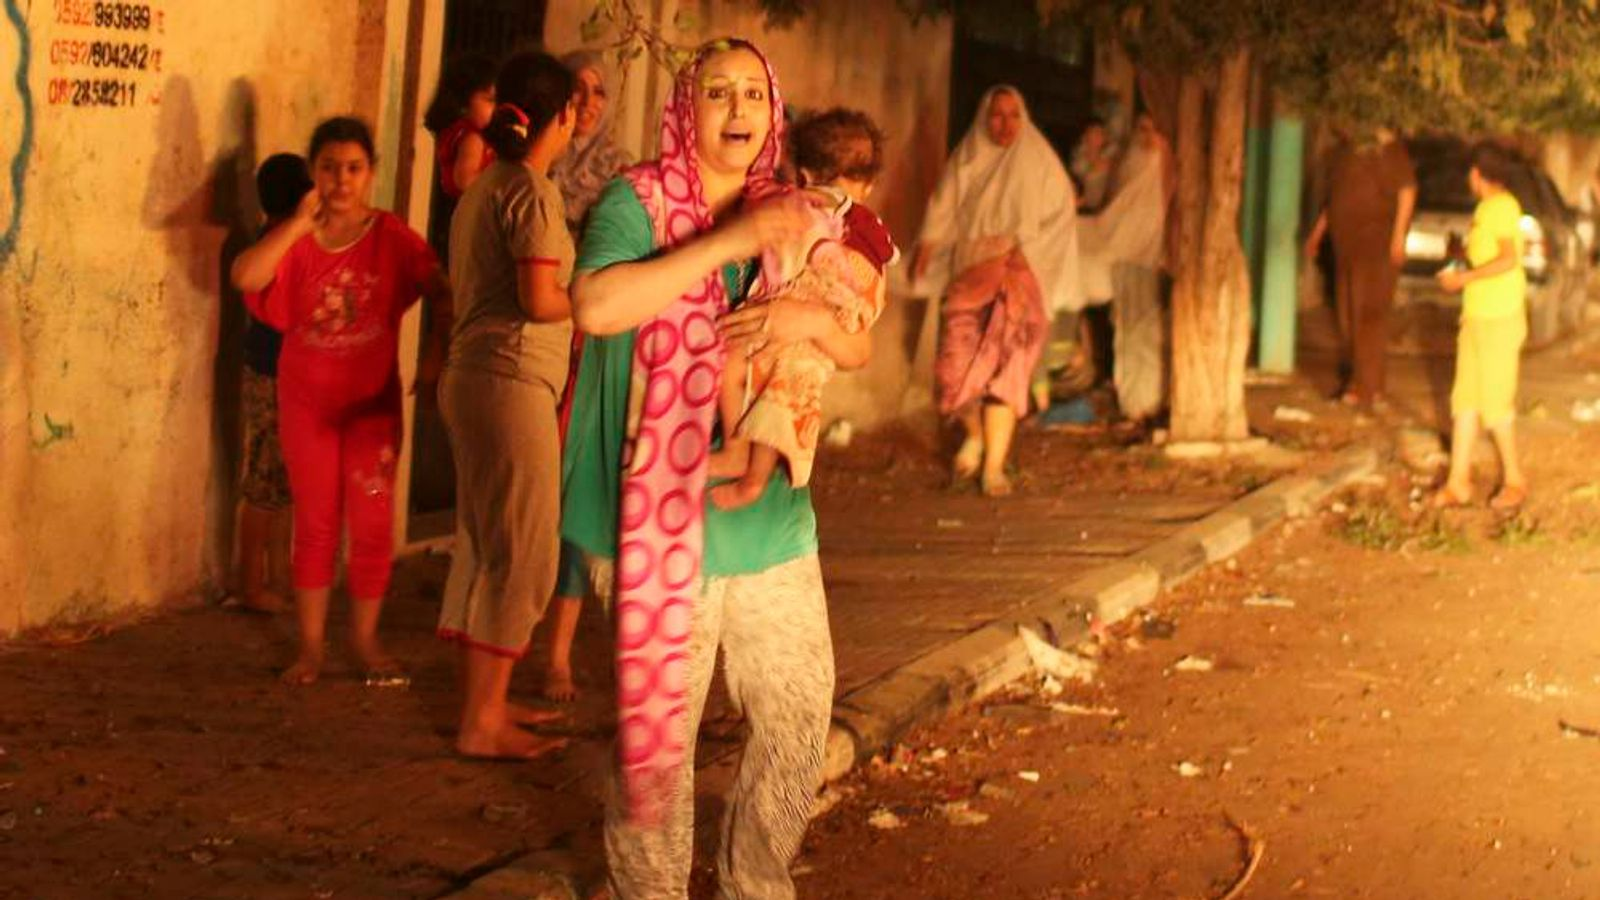 Palestinians flee their houses at the scene of what witnesses said was an Israeli air strike, in Gaza City